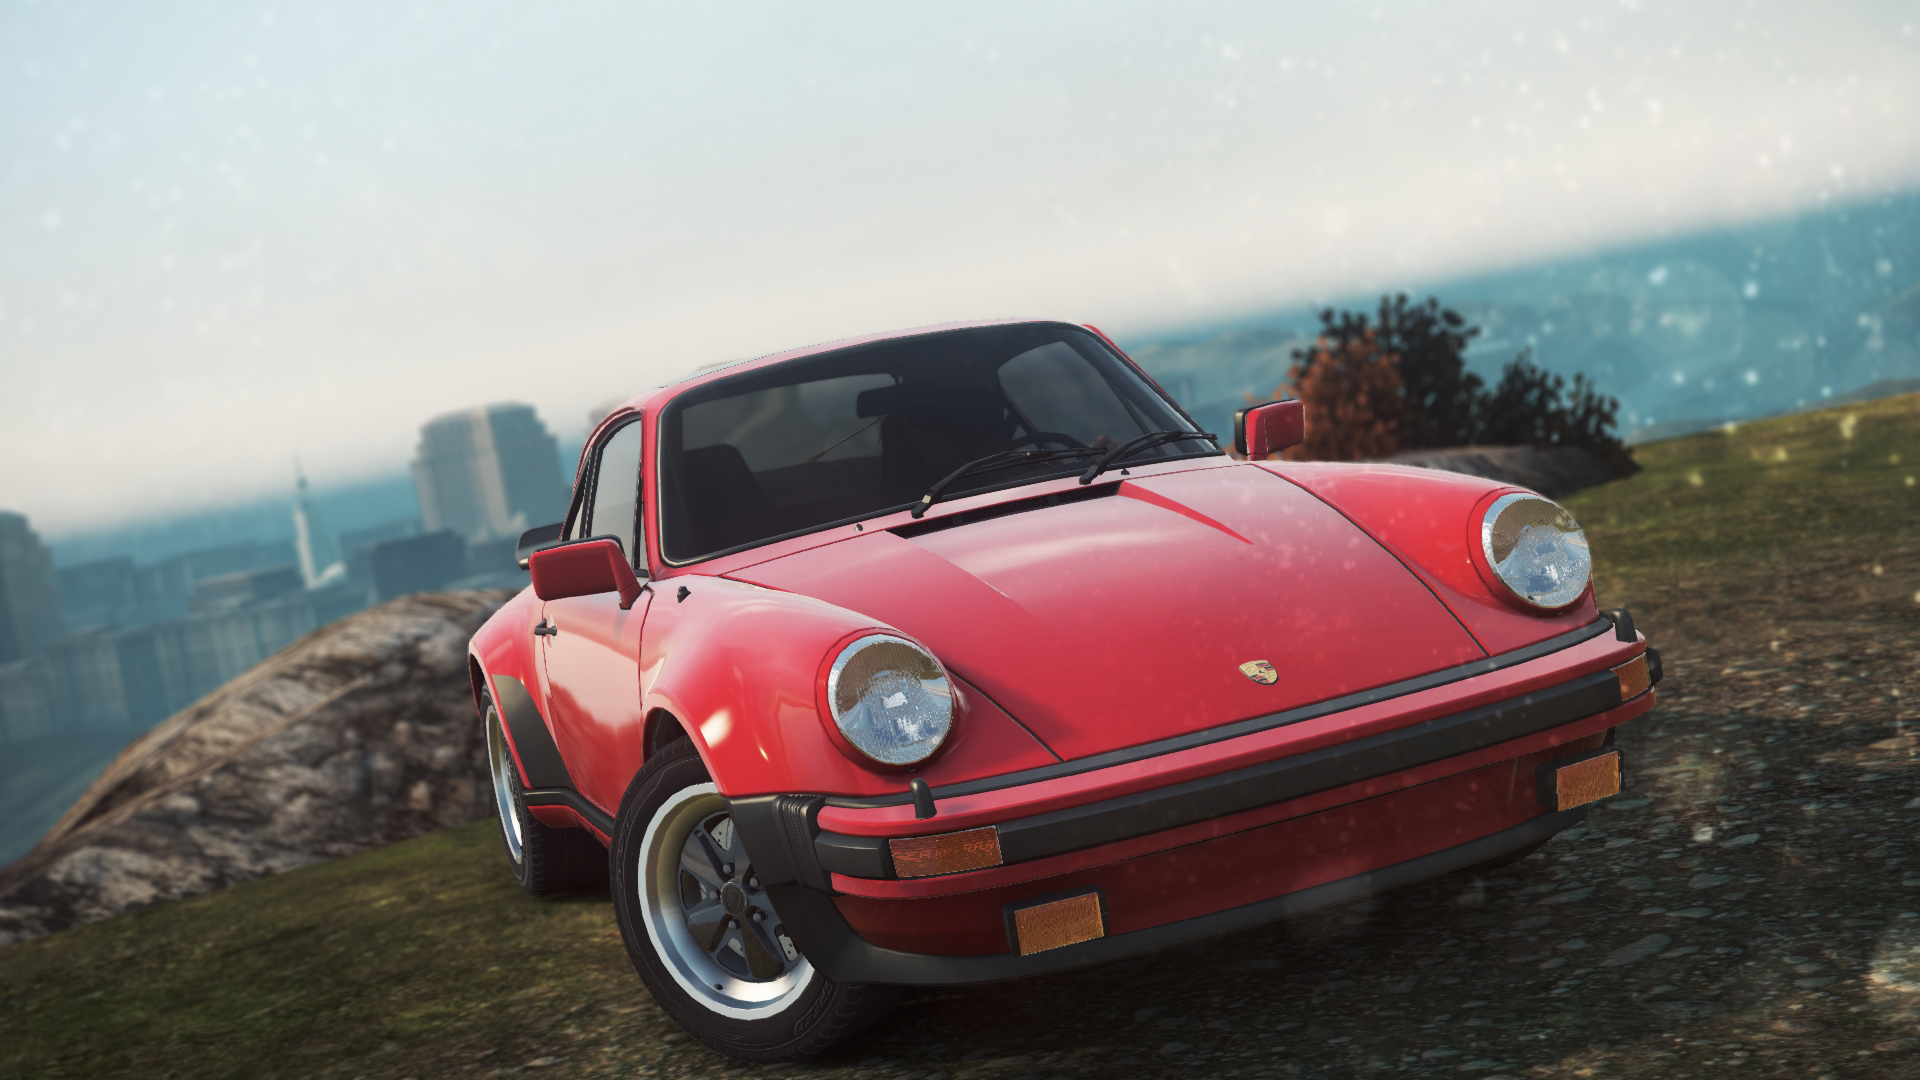 porsche 911 turbo 930 3 0 need for speed wiki fandom powered by wikia. Black Bedroom Furniture Sets. Home Design Ideas